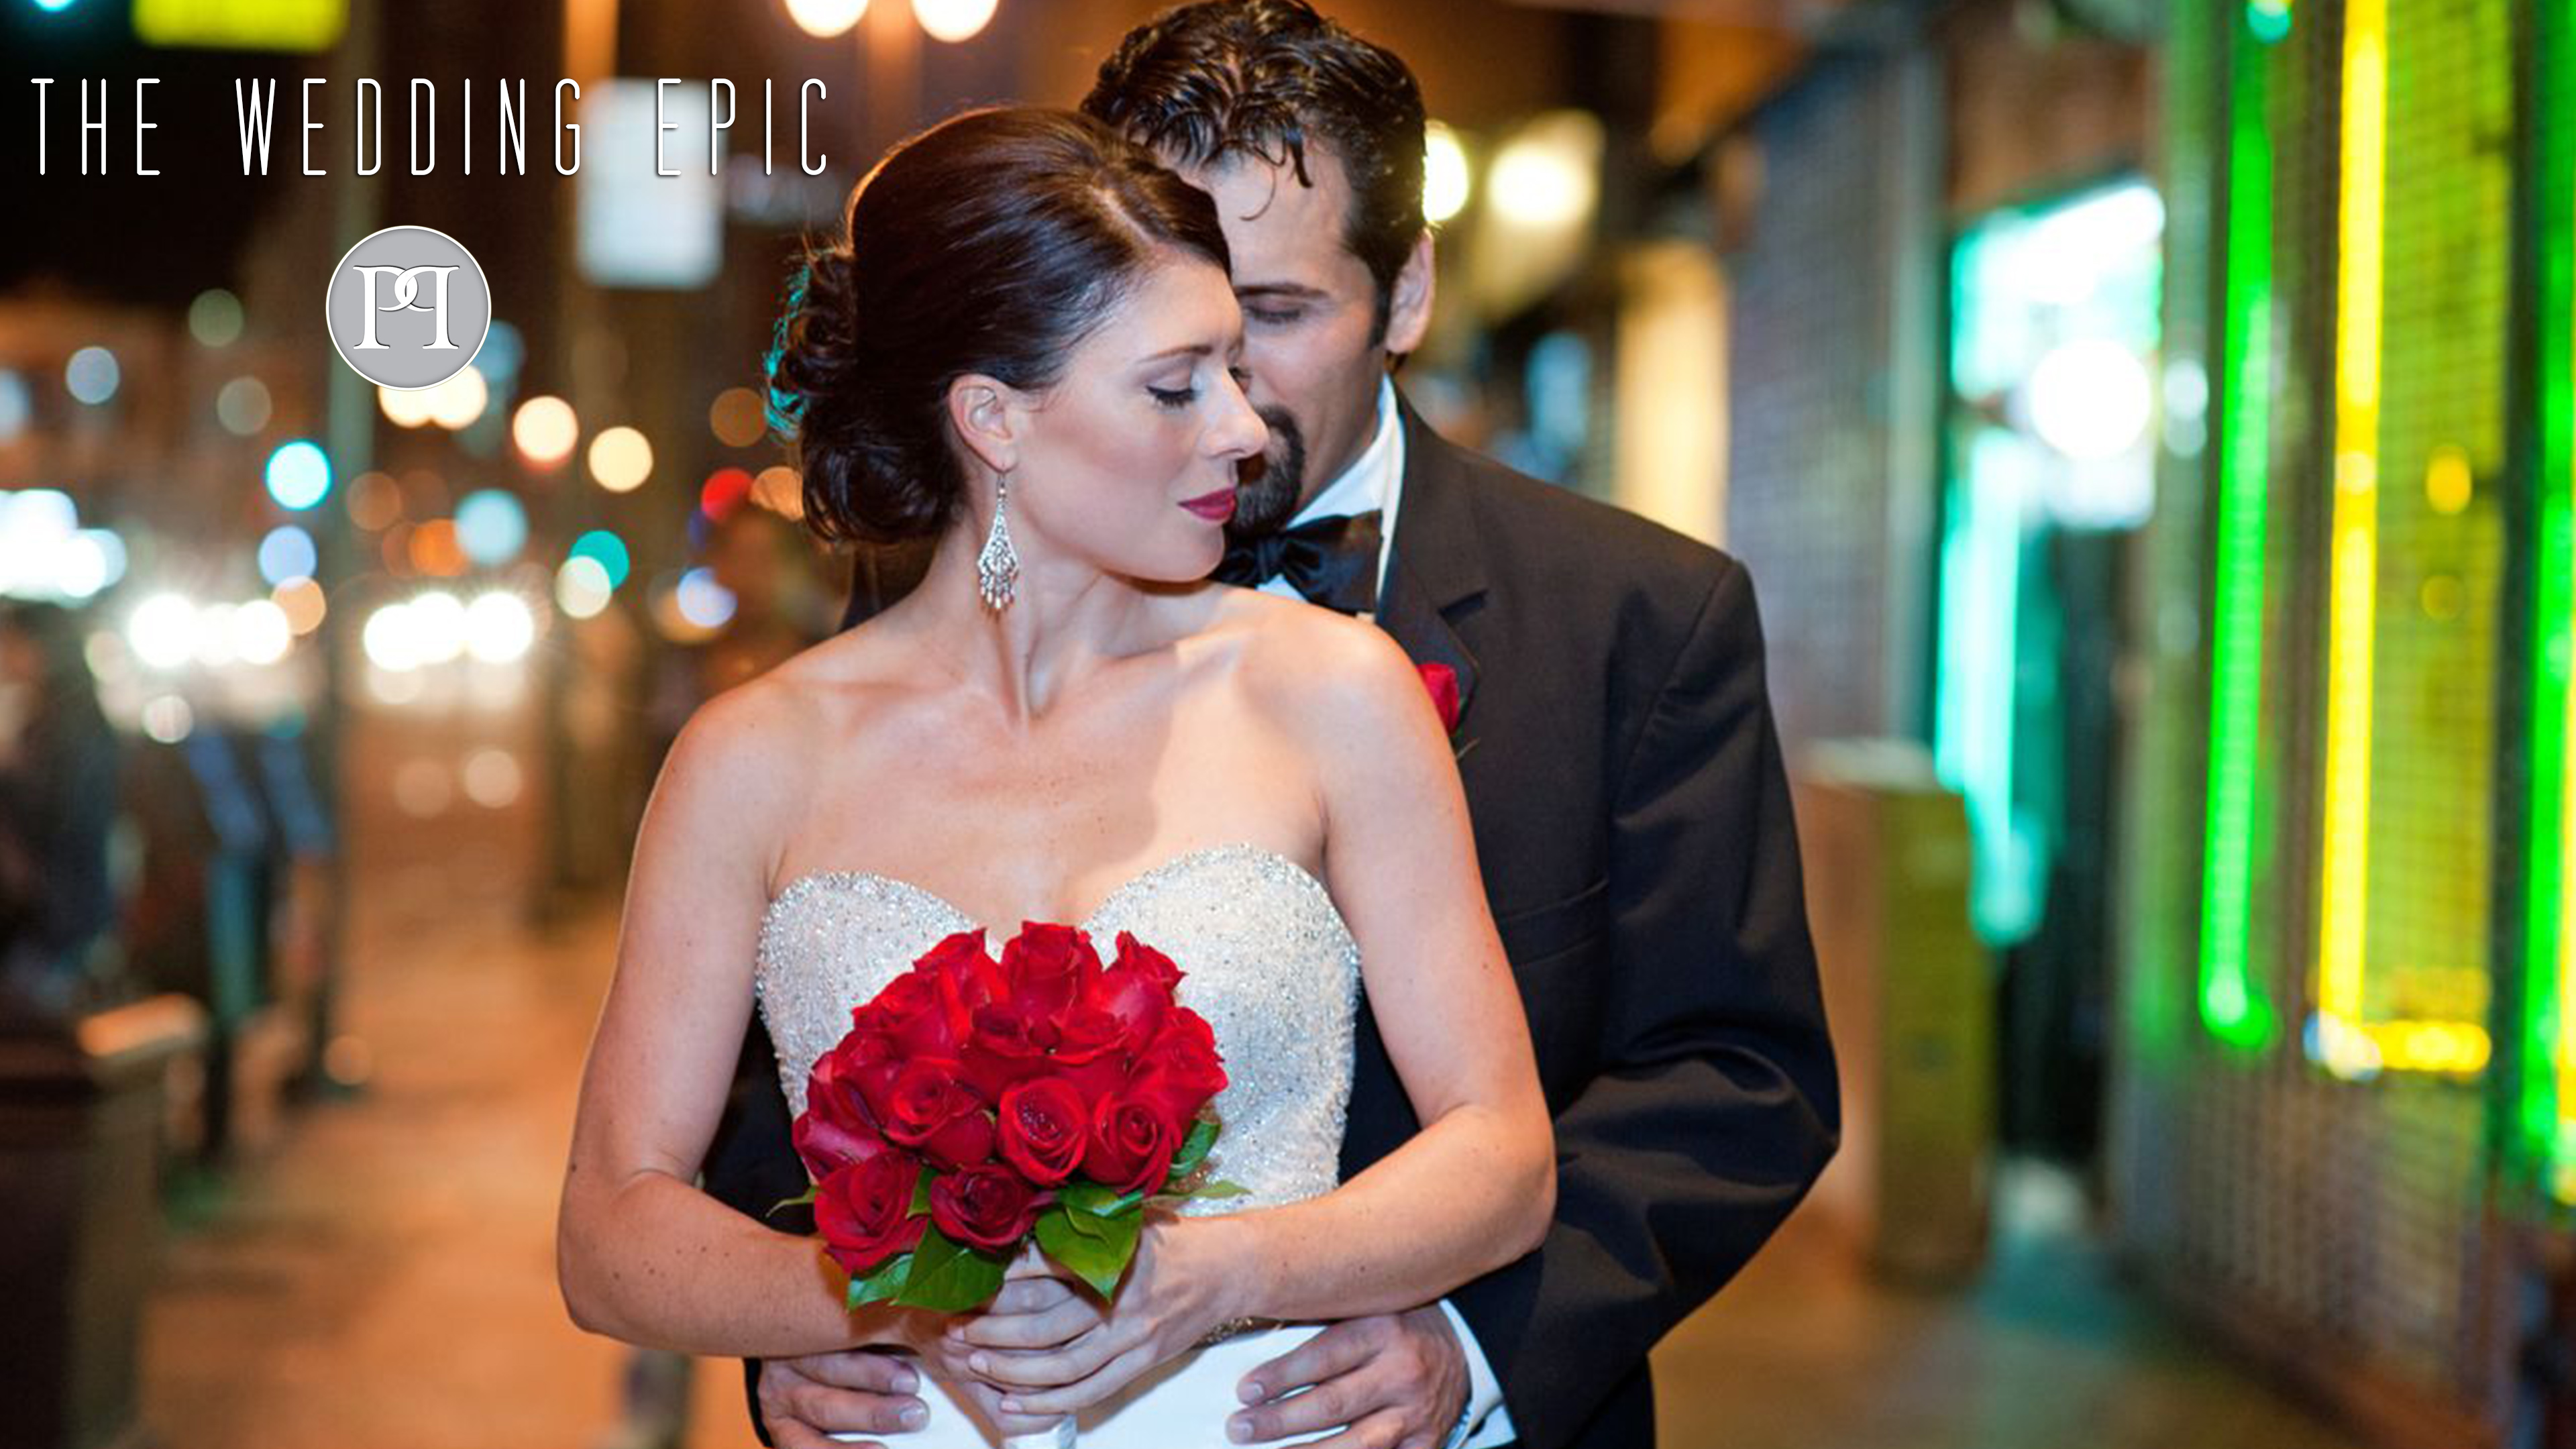 Wedding Cinematography by Peter Kappes